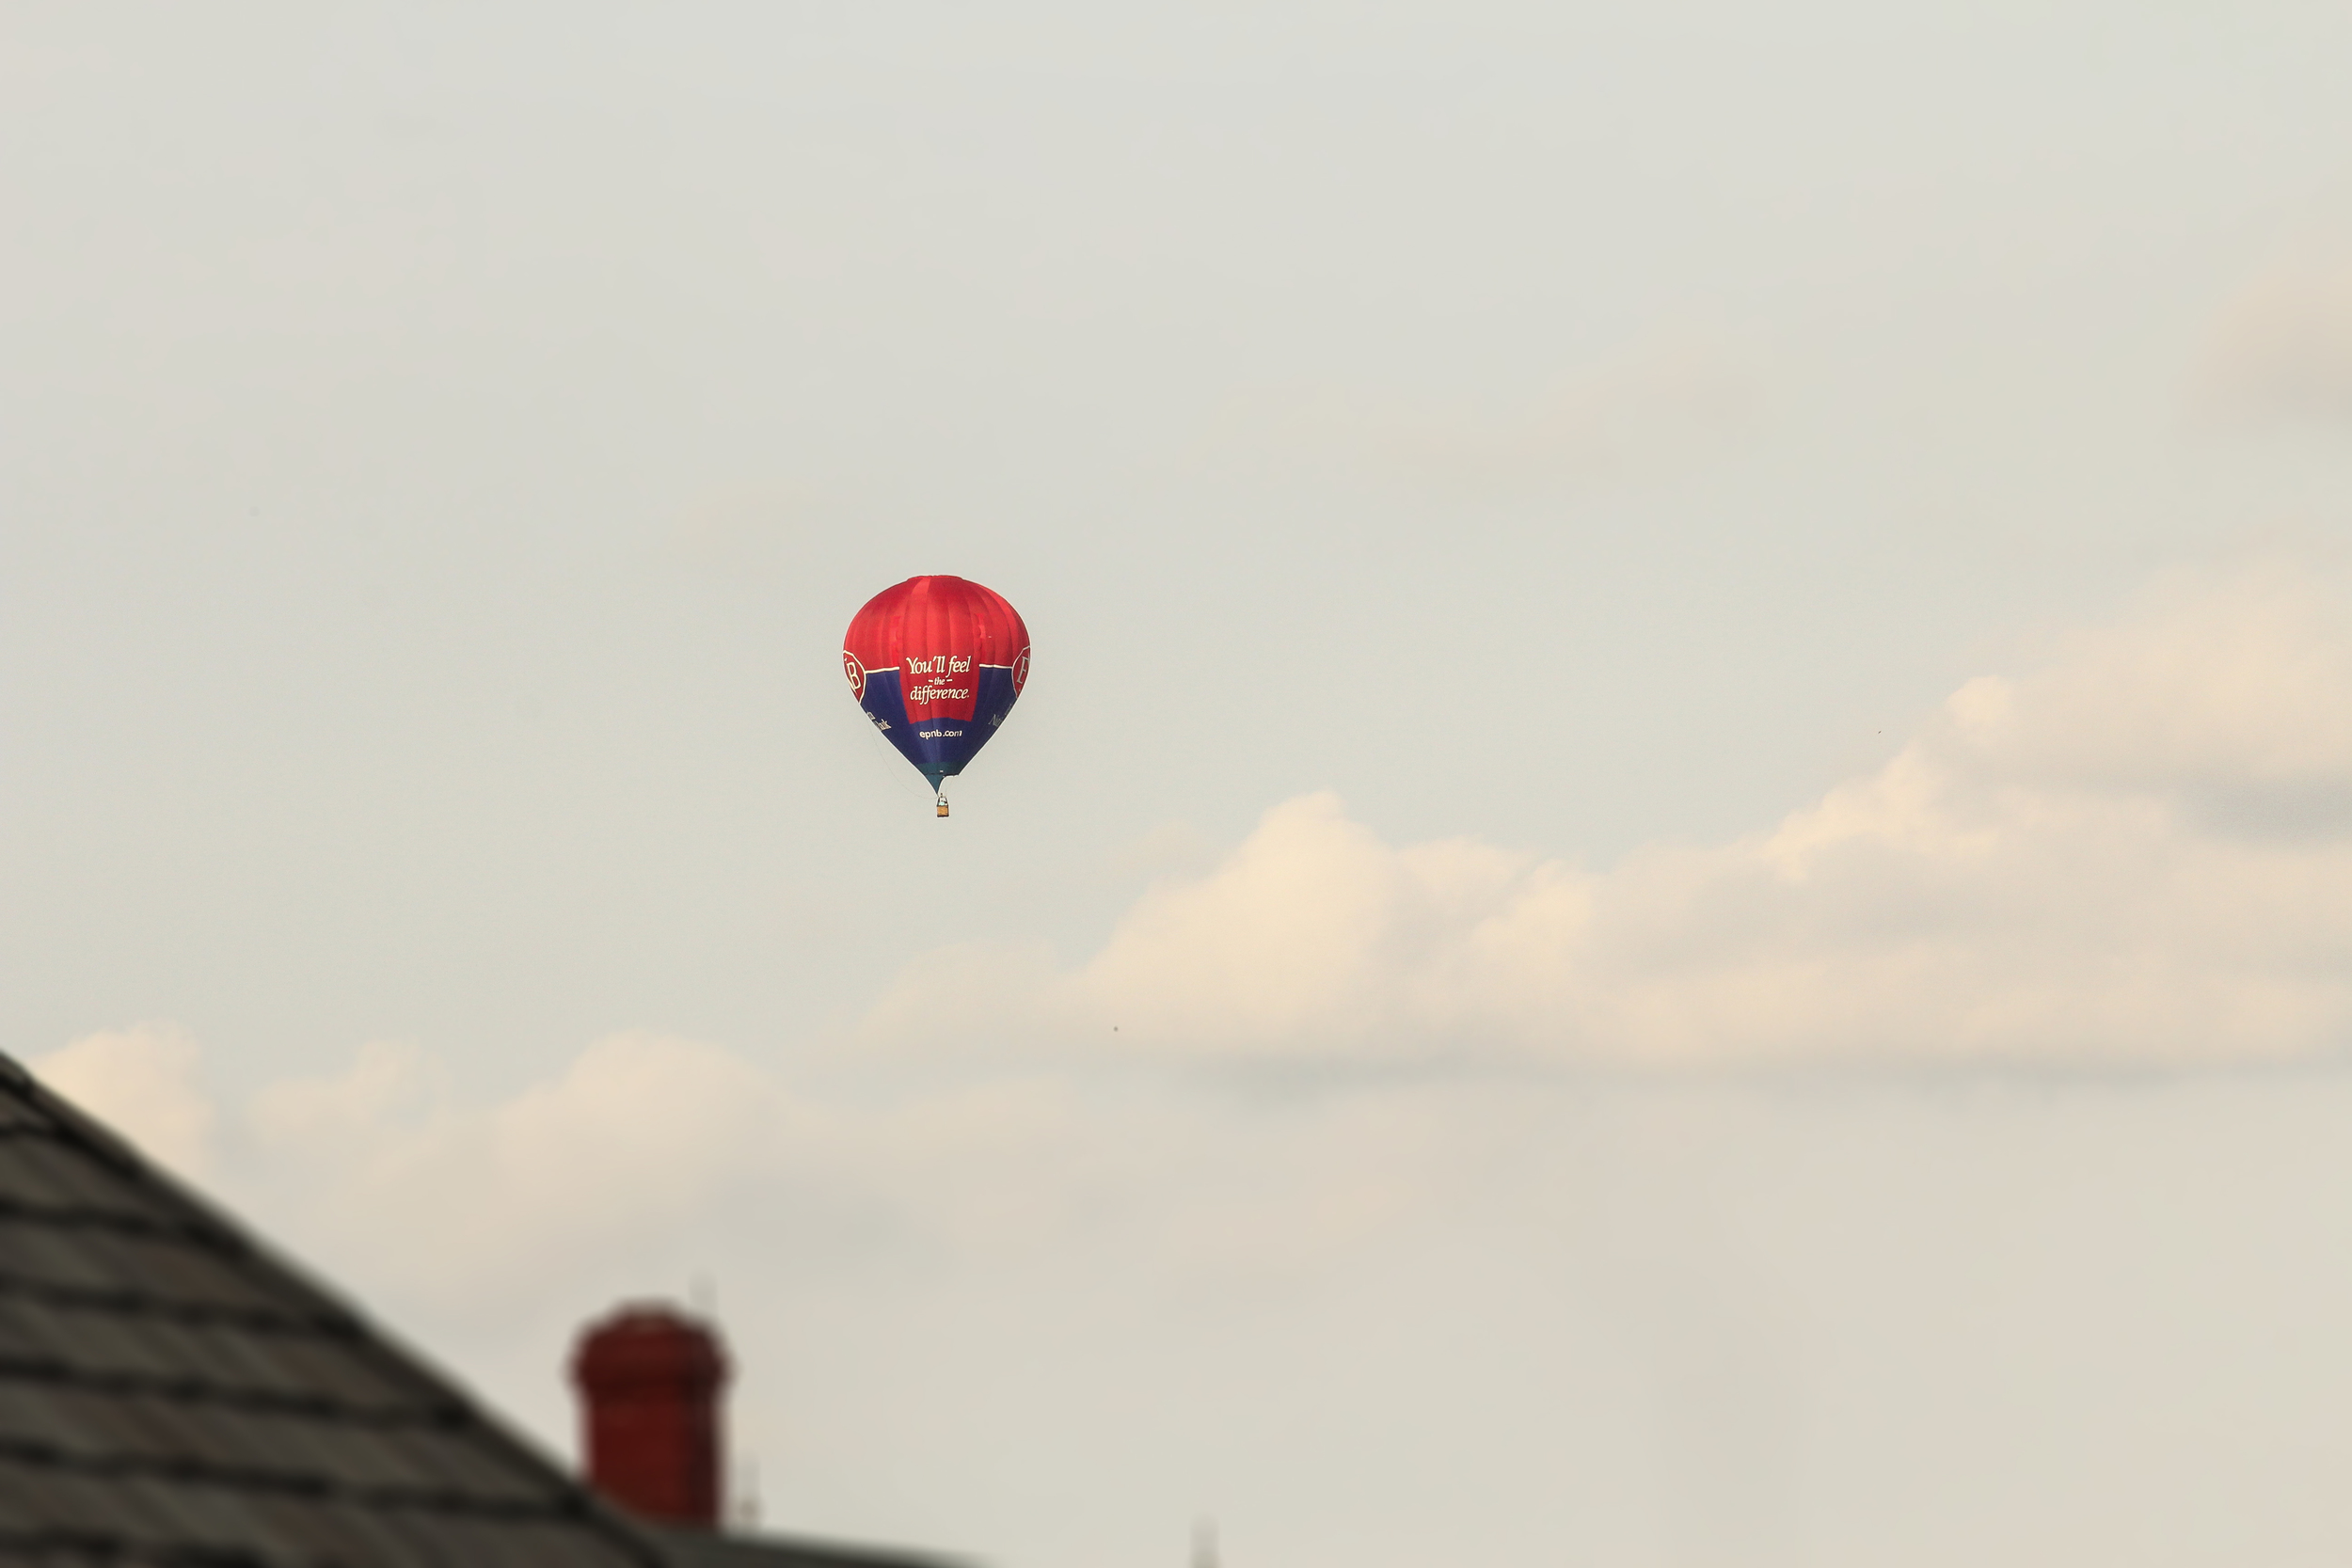 """We made a stop at """"The Good and Plenty"""" restaurant during our stay (kudos for the abundance of food!) during which there were a few hot air balloons that took off. Here is one of the more striking ones."""